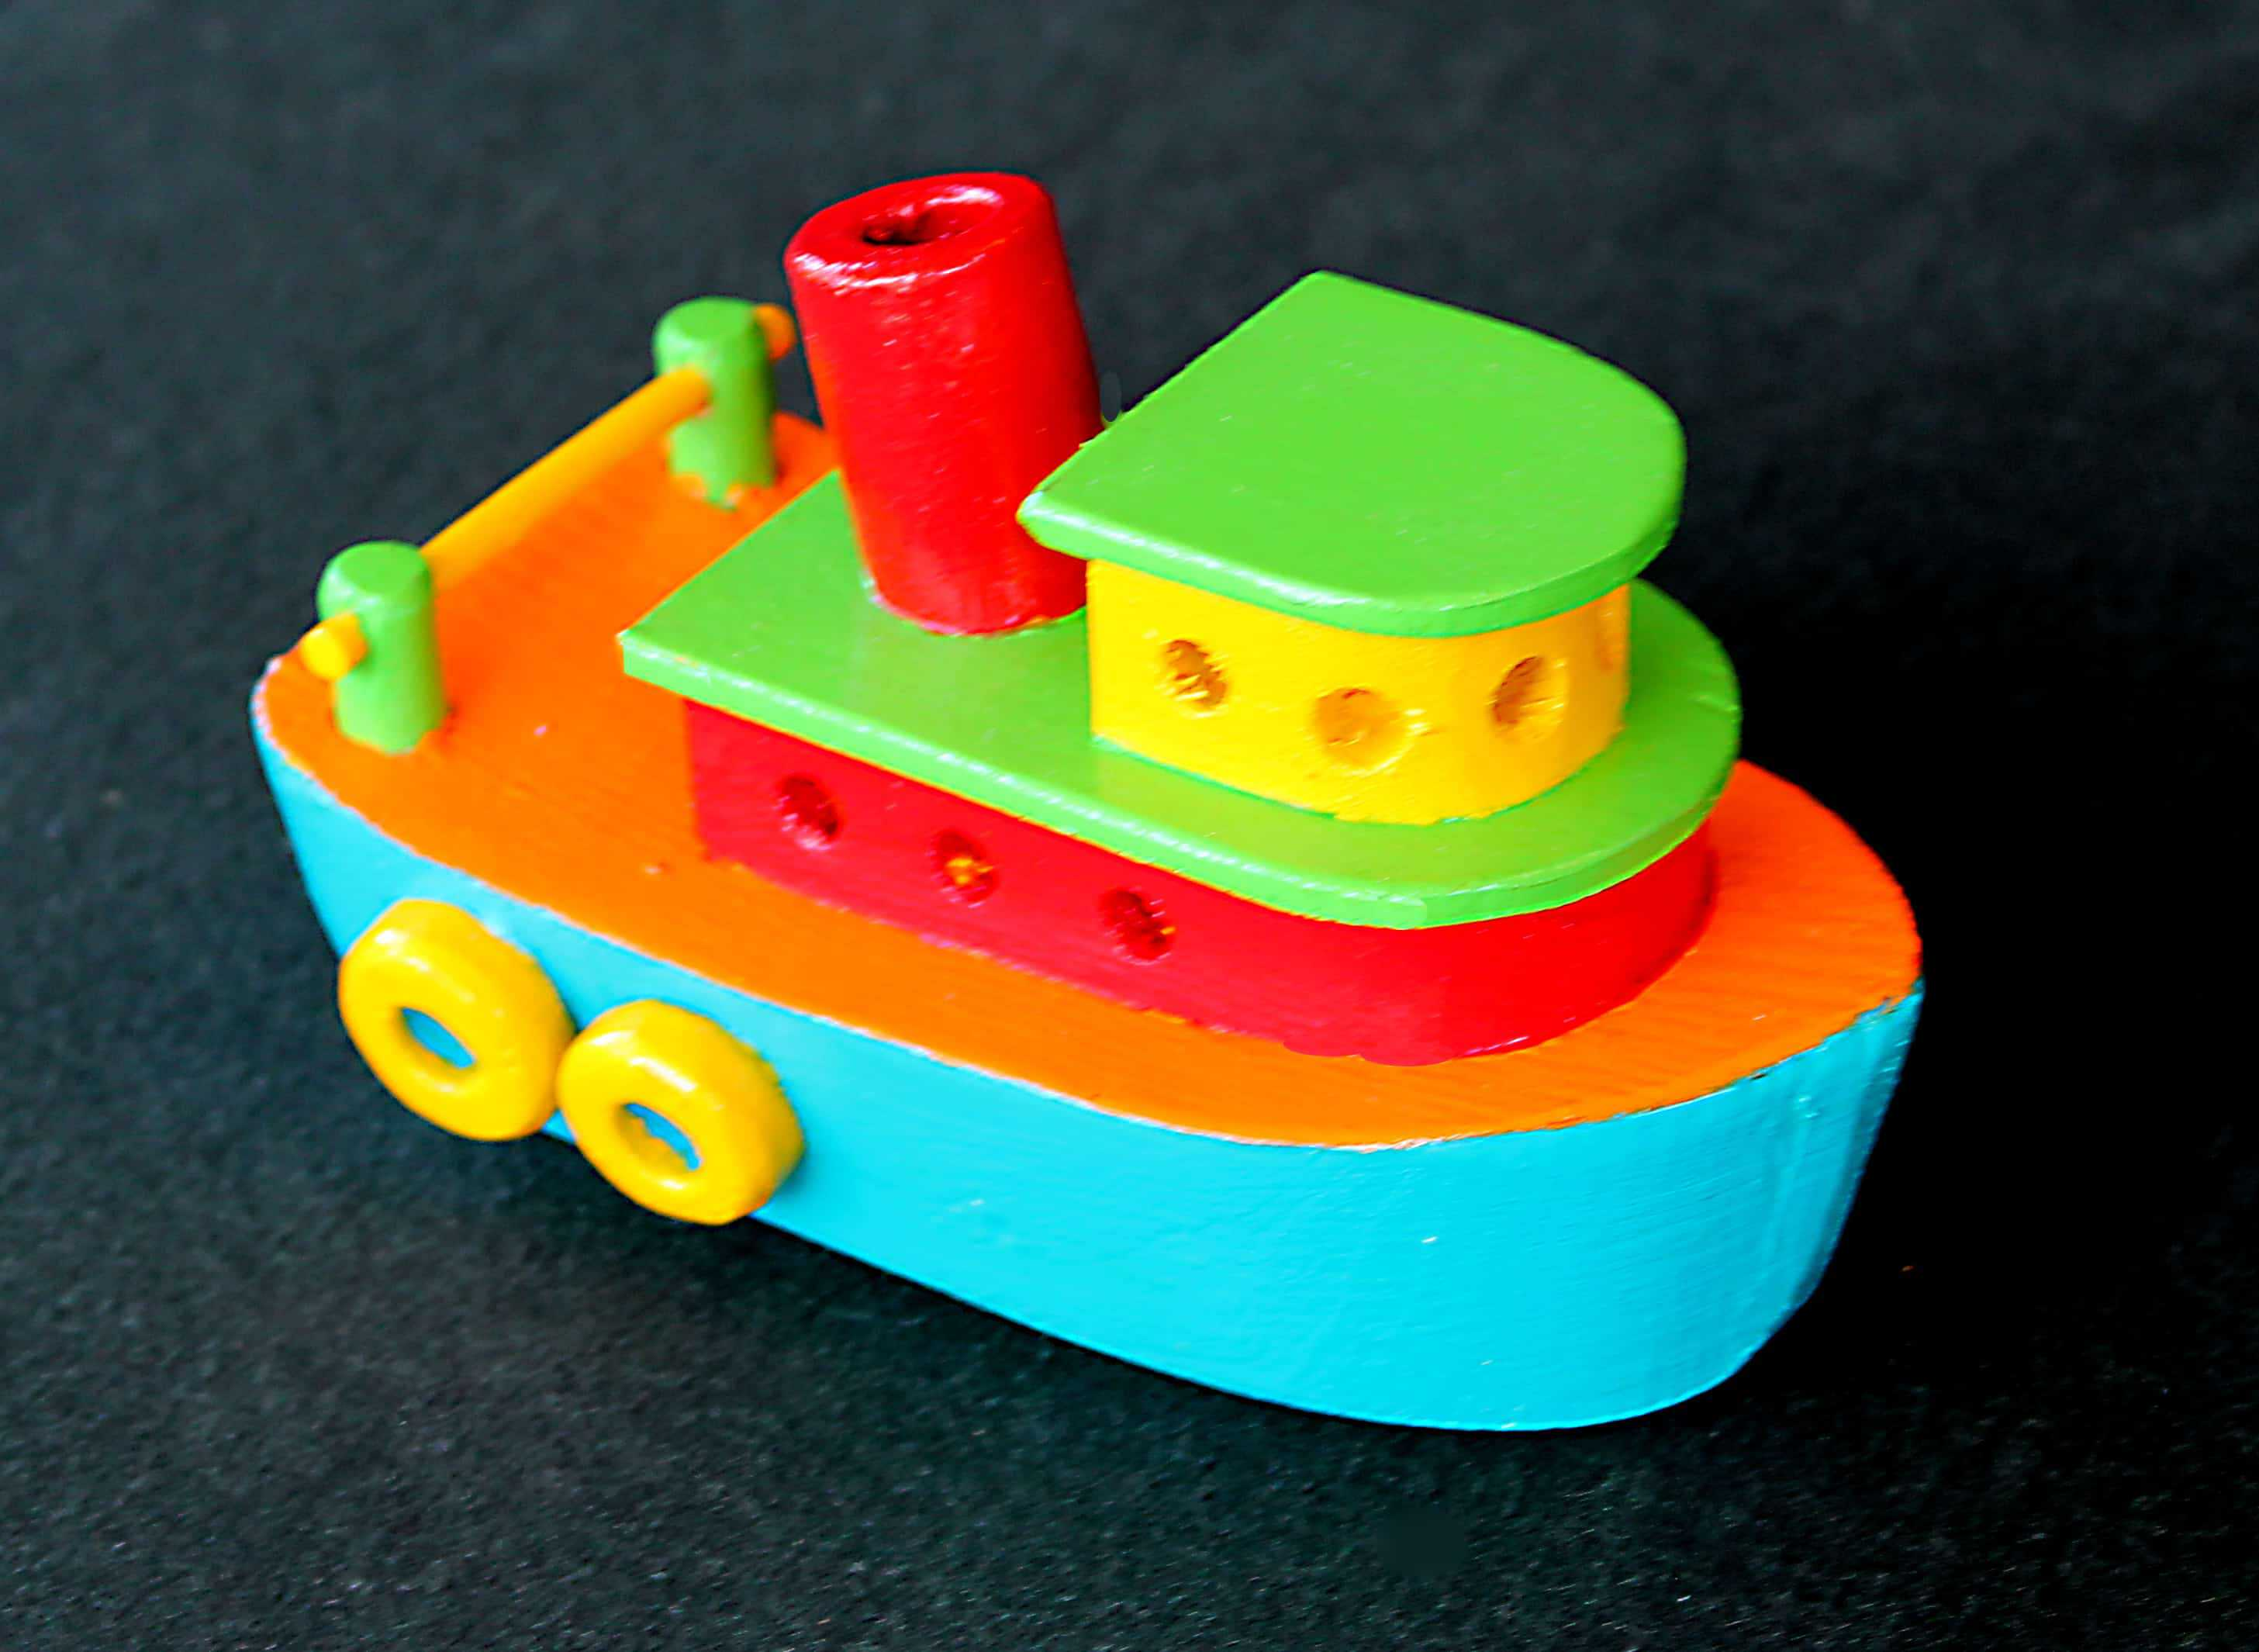 Tug boat woodworking plan, painted version